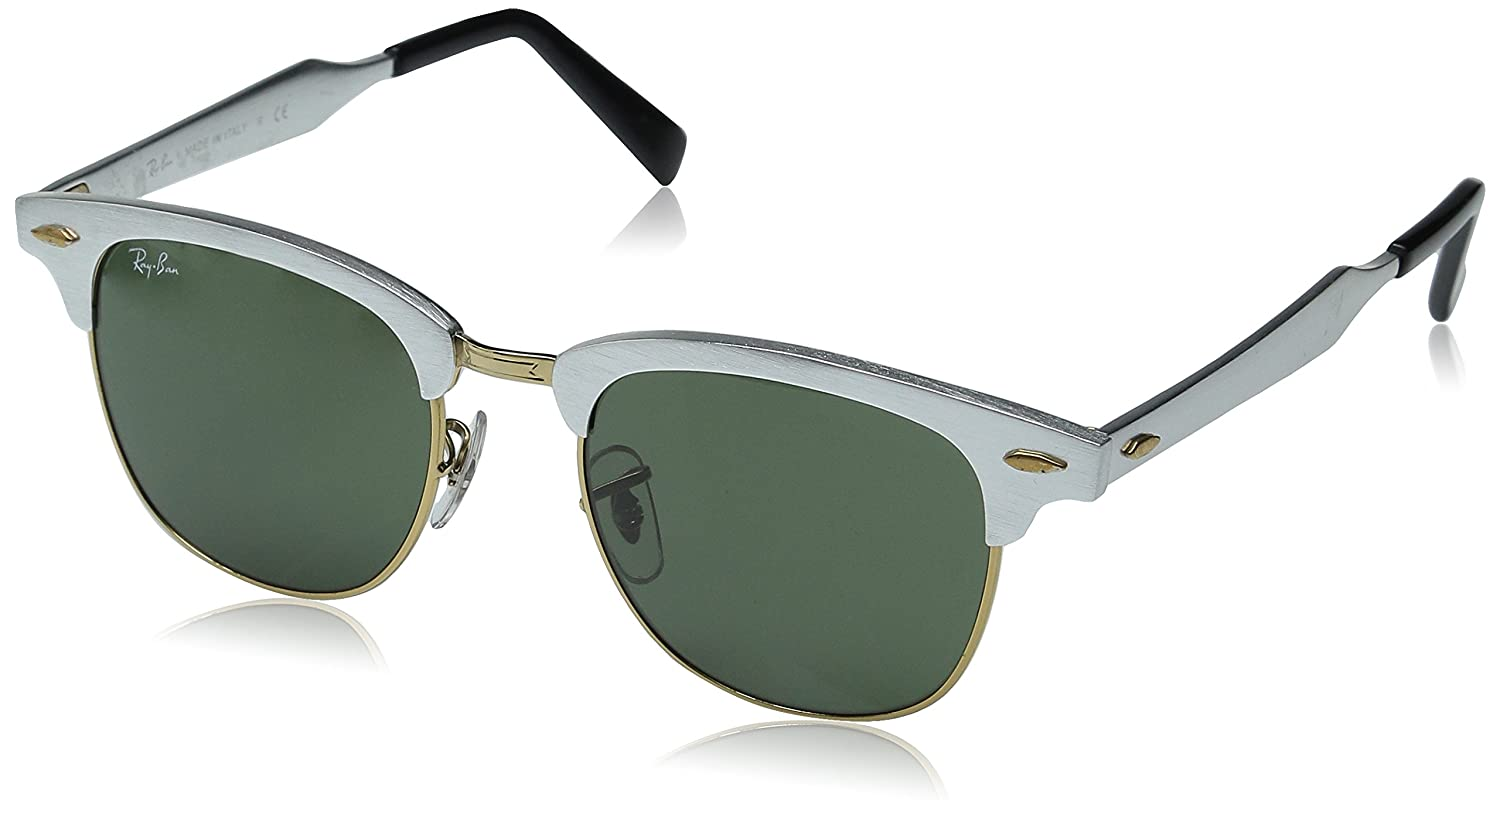 19a30e388f52c RAY BAN CLUBMASTER ALUMINUM RB 3507 137 40 51MM BRUSHED SILVER  GREY MIRROR  NEW  Amazon.co.uk  Sports   Outdoors